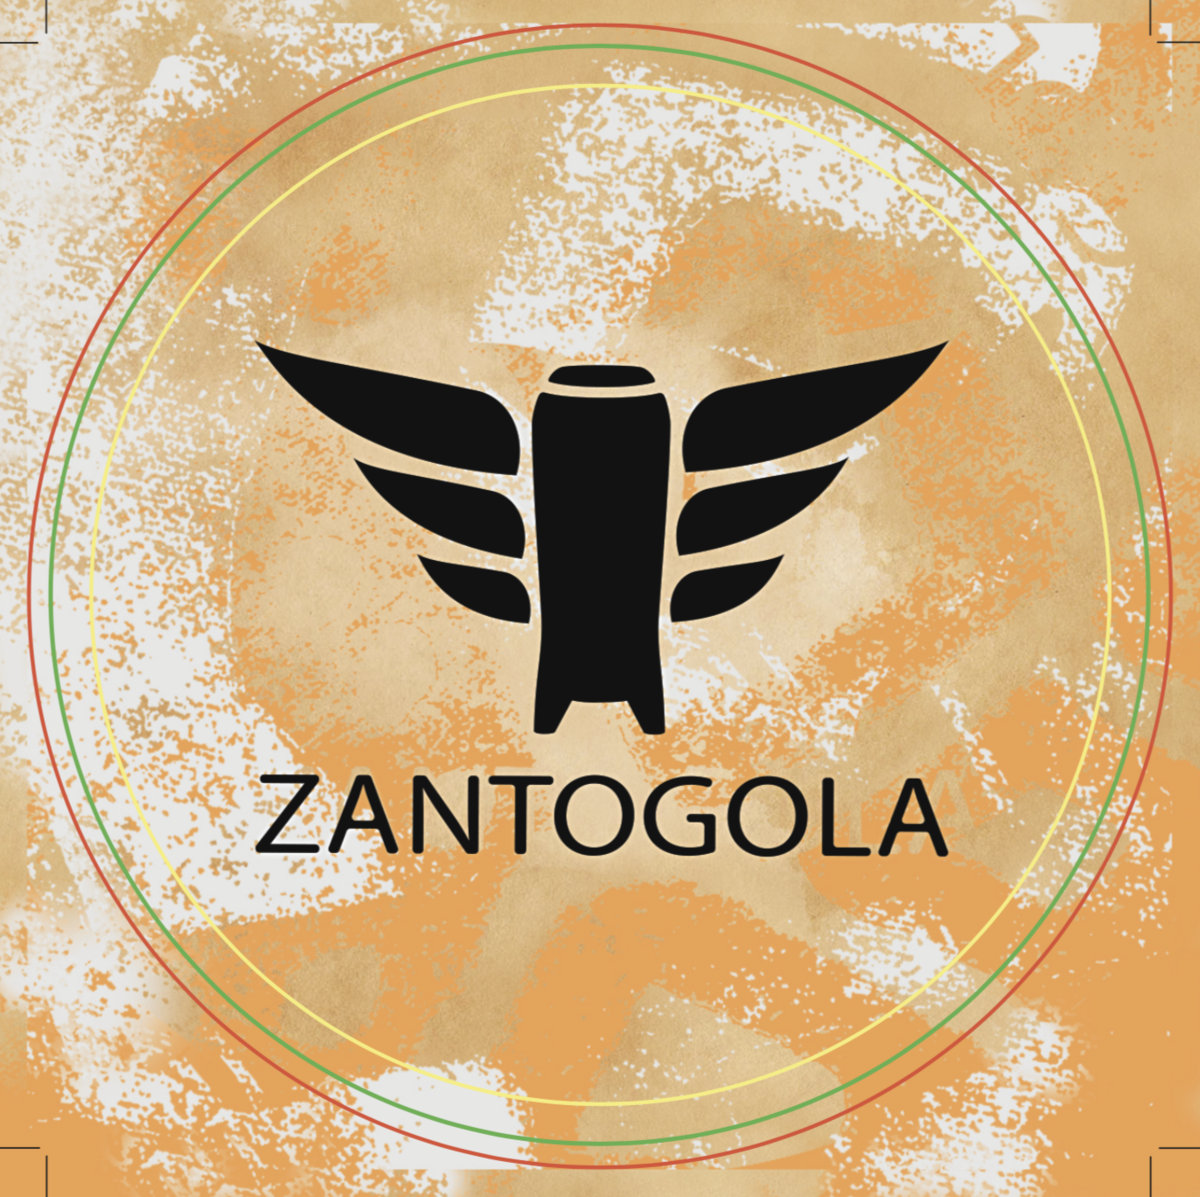 London label Wahever Records are set to release Gùndo Fara, the debut EP by Zantogola next month.